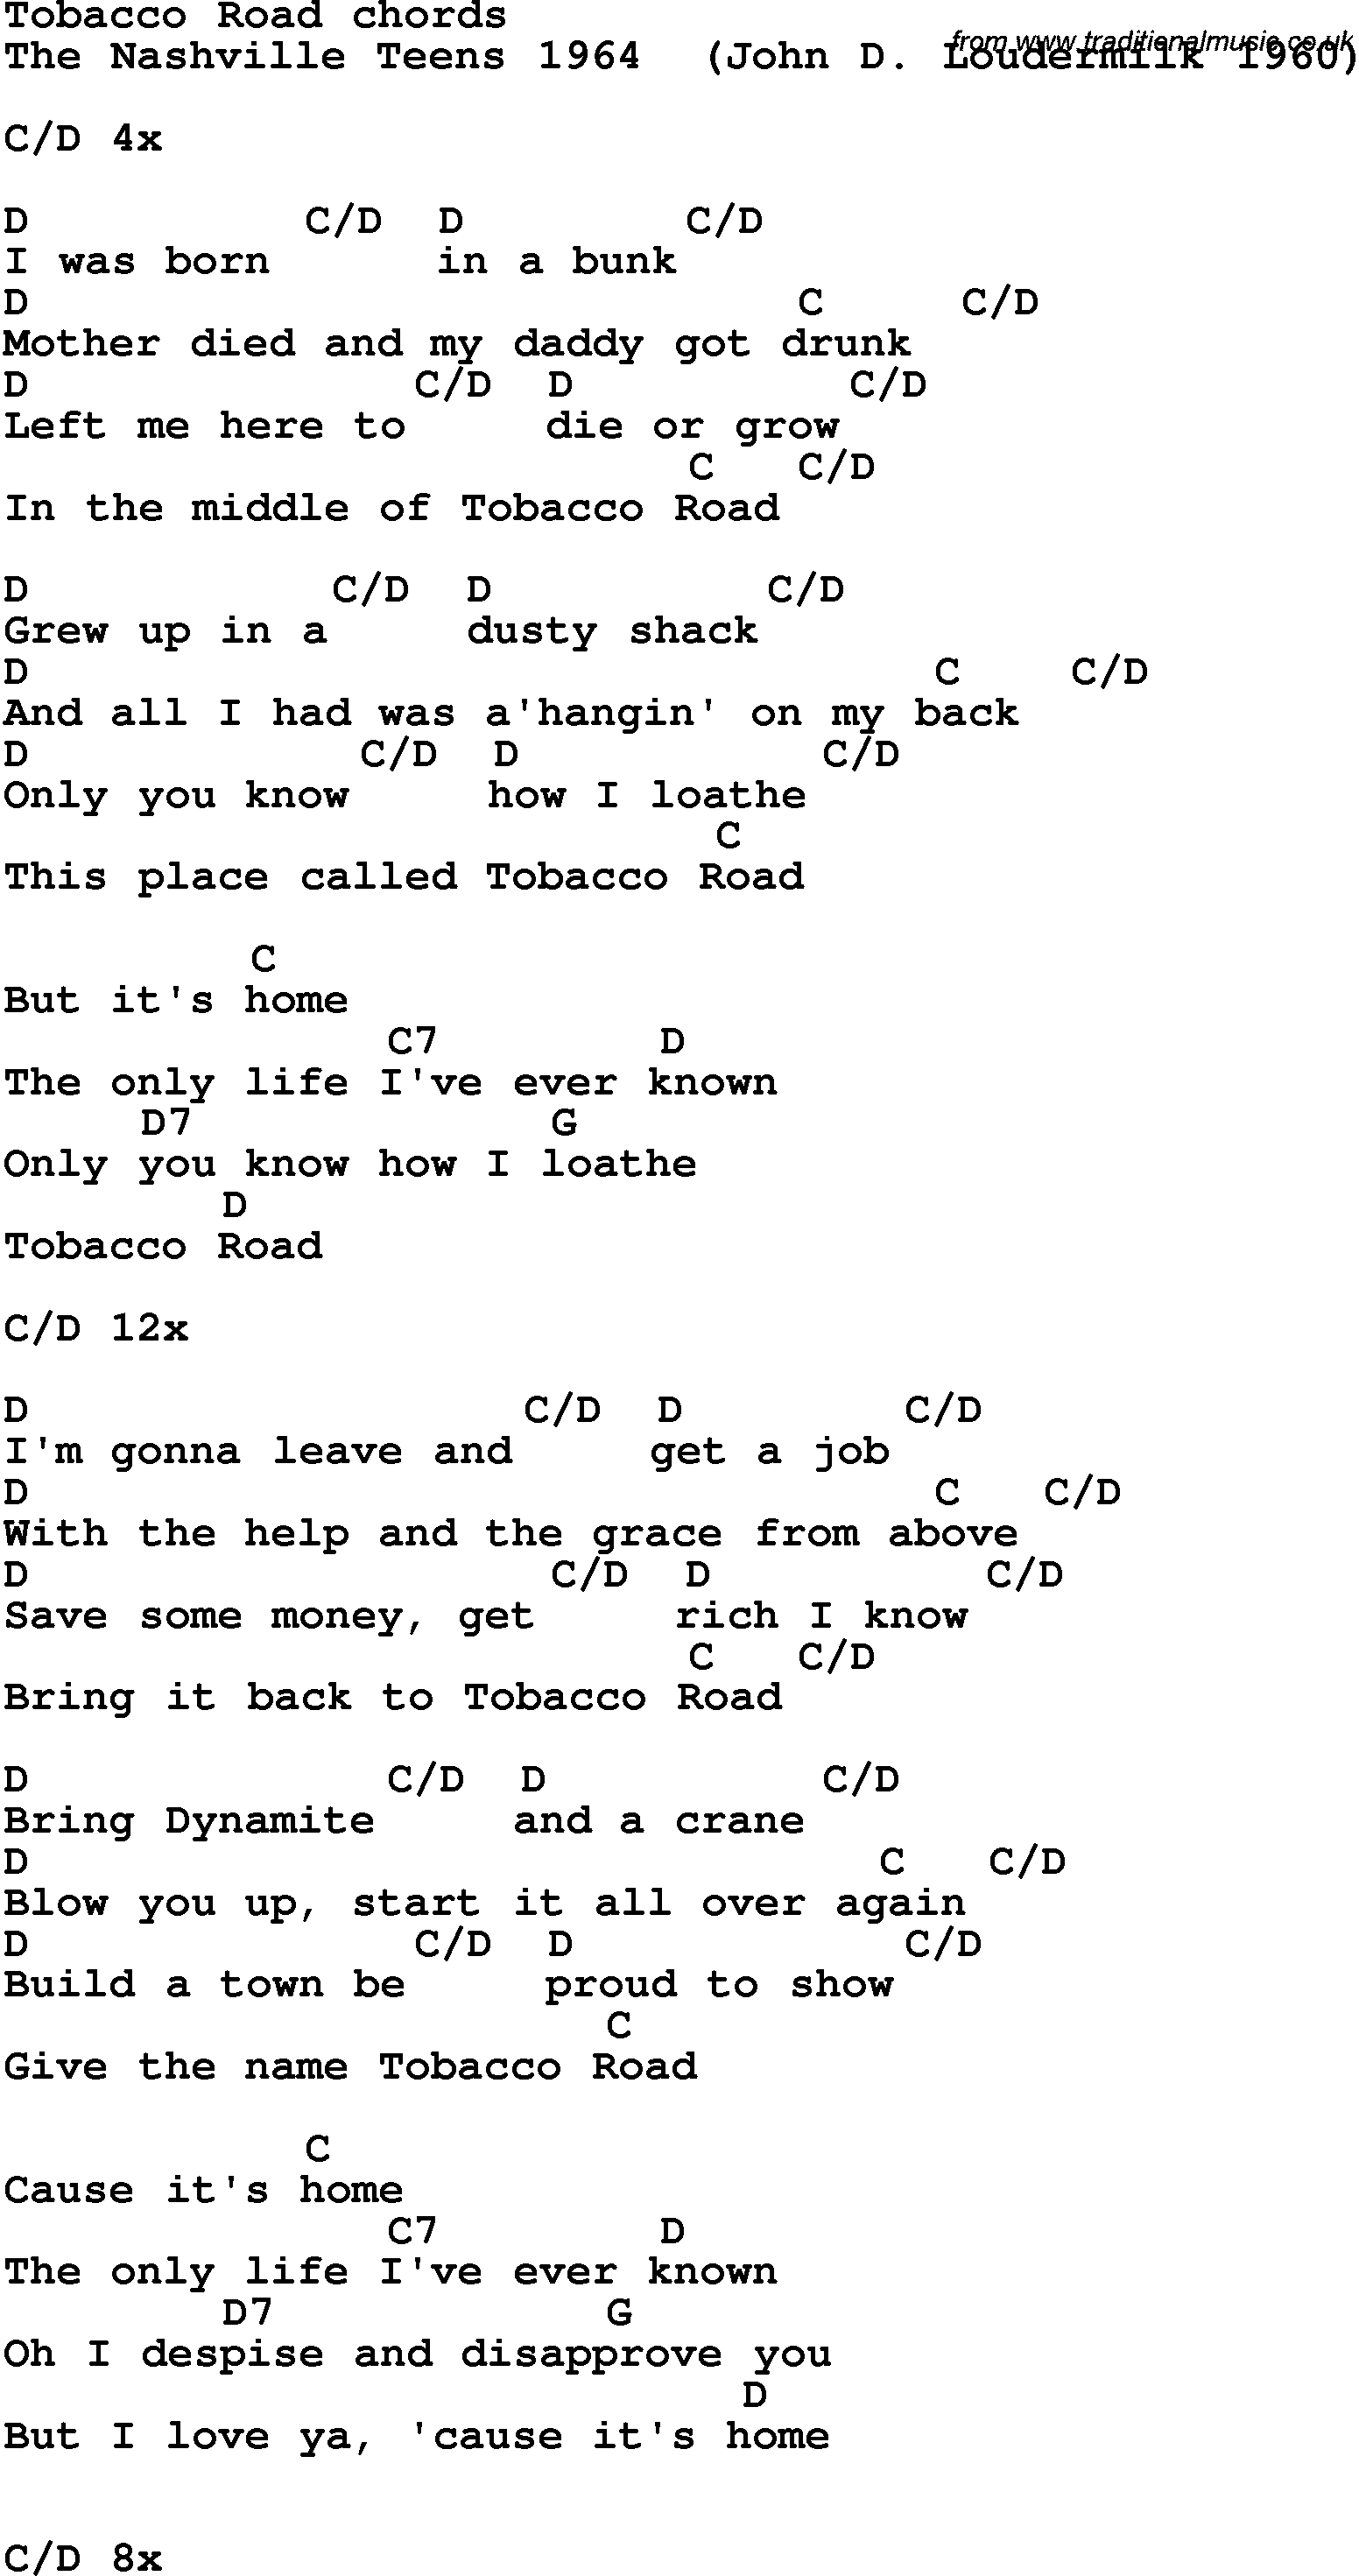 Song Lyrics With Guitar Chords For Tobacco Road